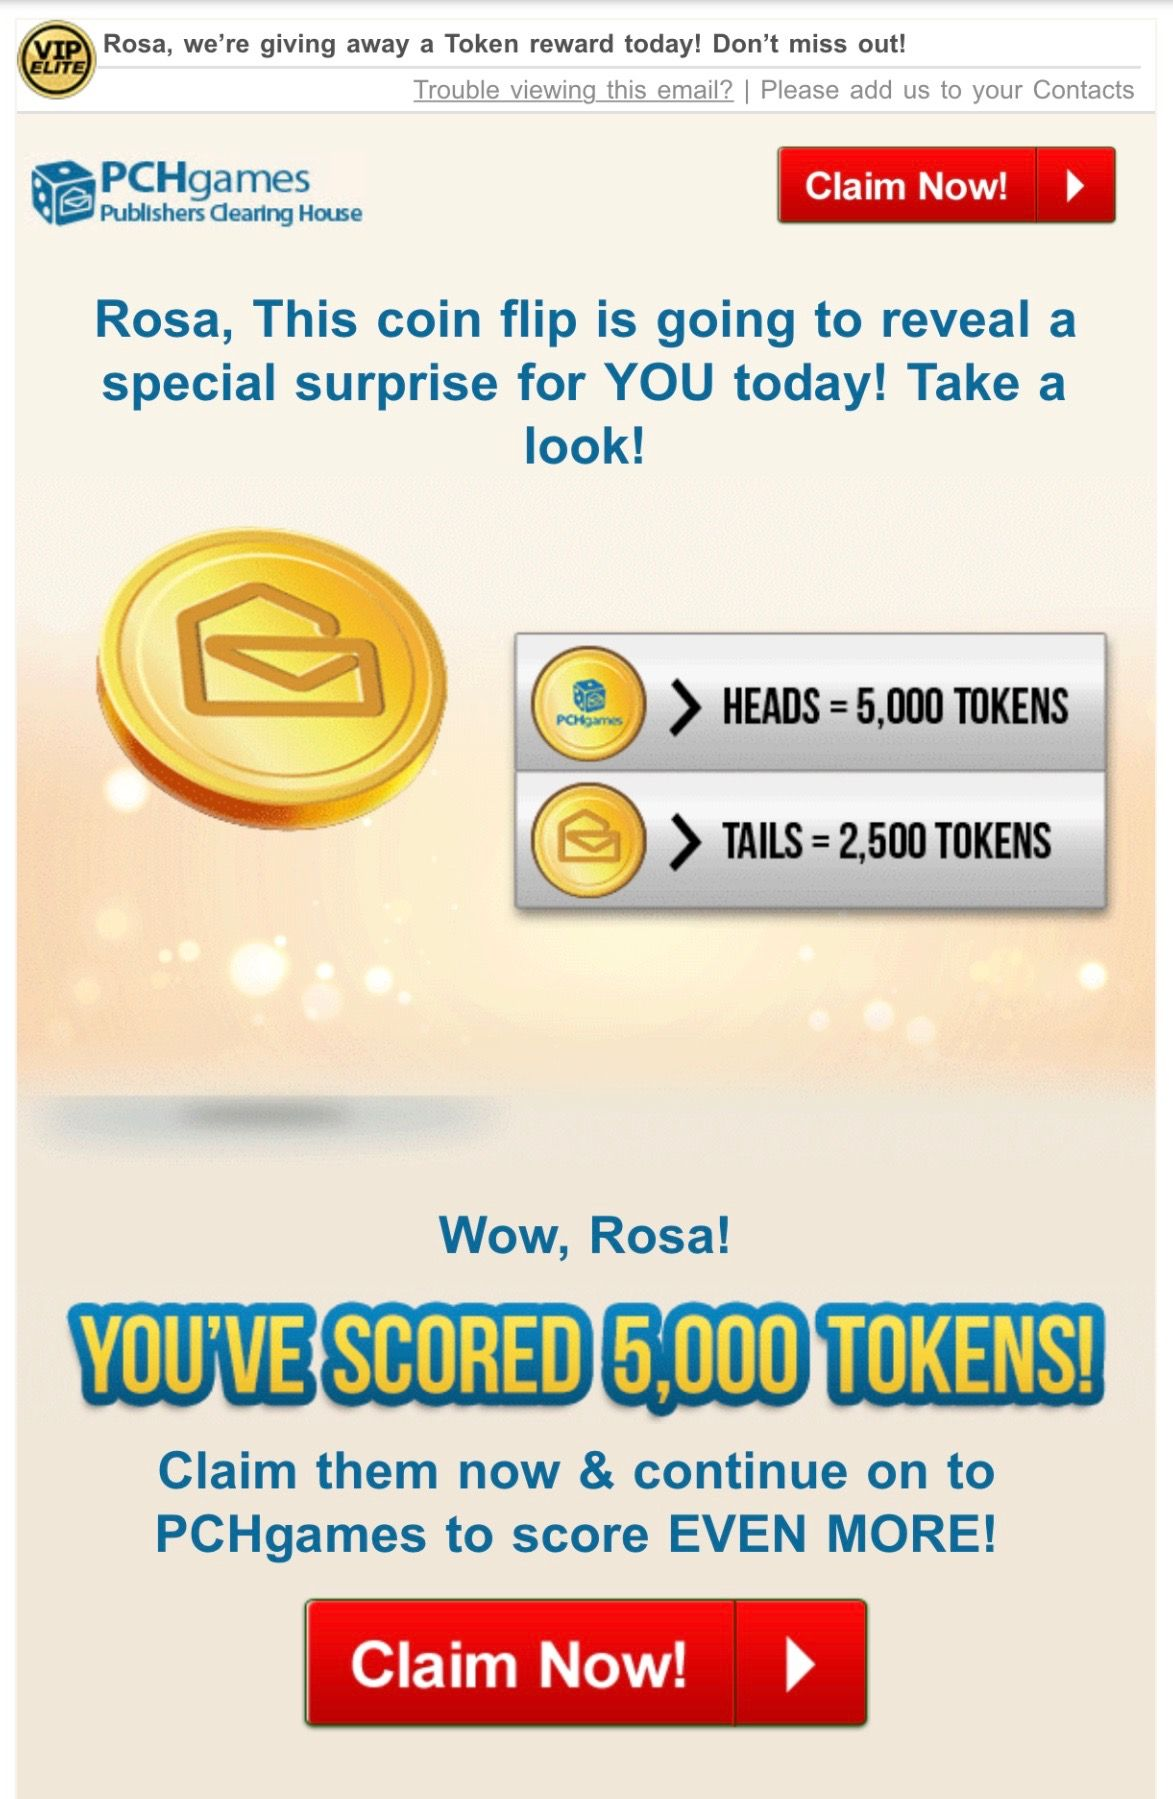 PCH GAMES I RRojas Claim My 5,000 Tokens & my Winning Prizes